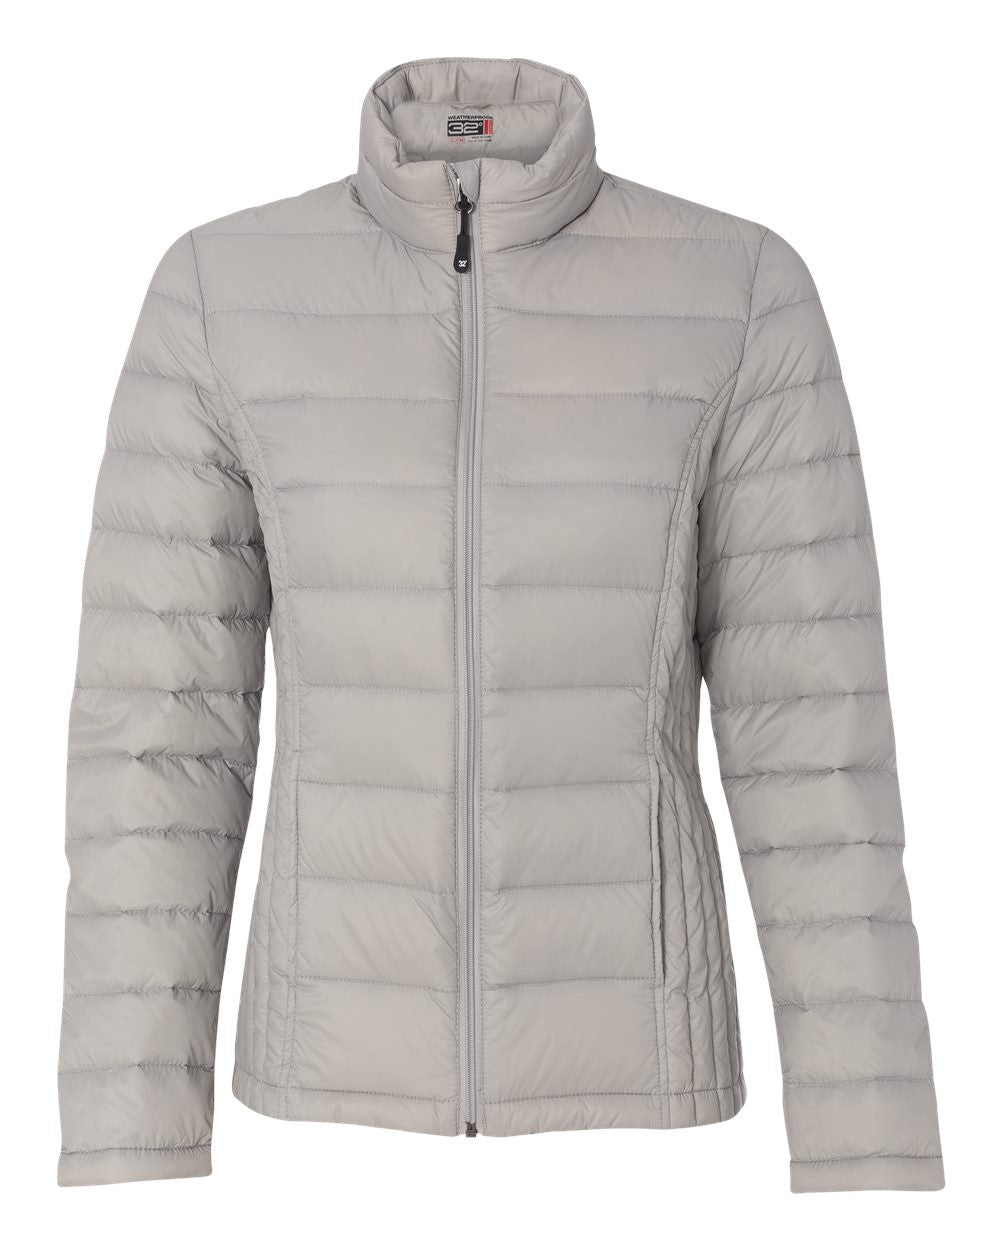 32 Degrees Women's Packable Down Jacket by Weatherproof